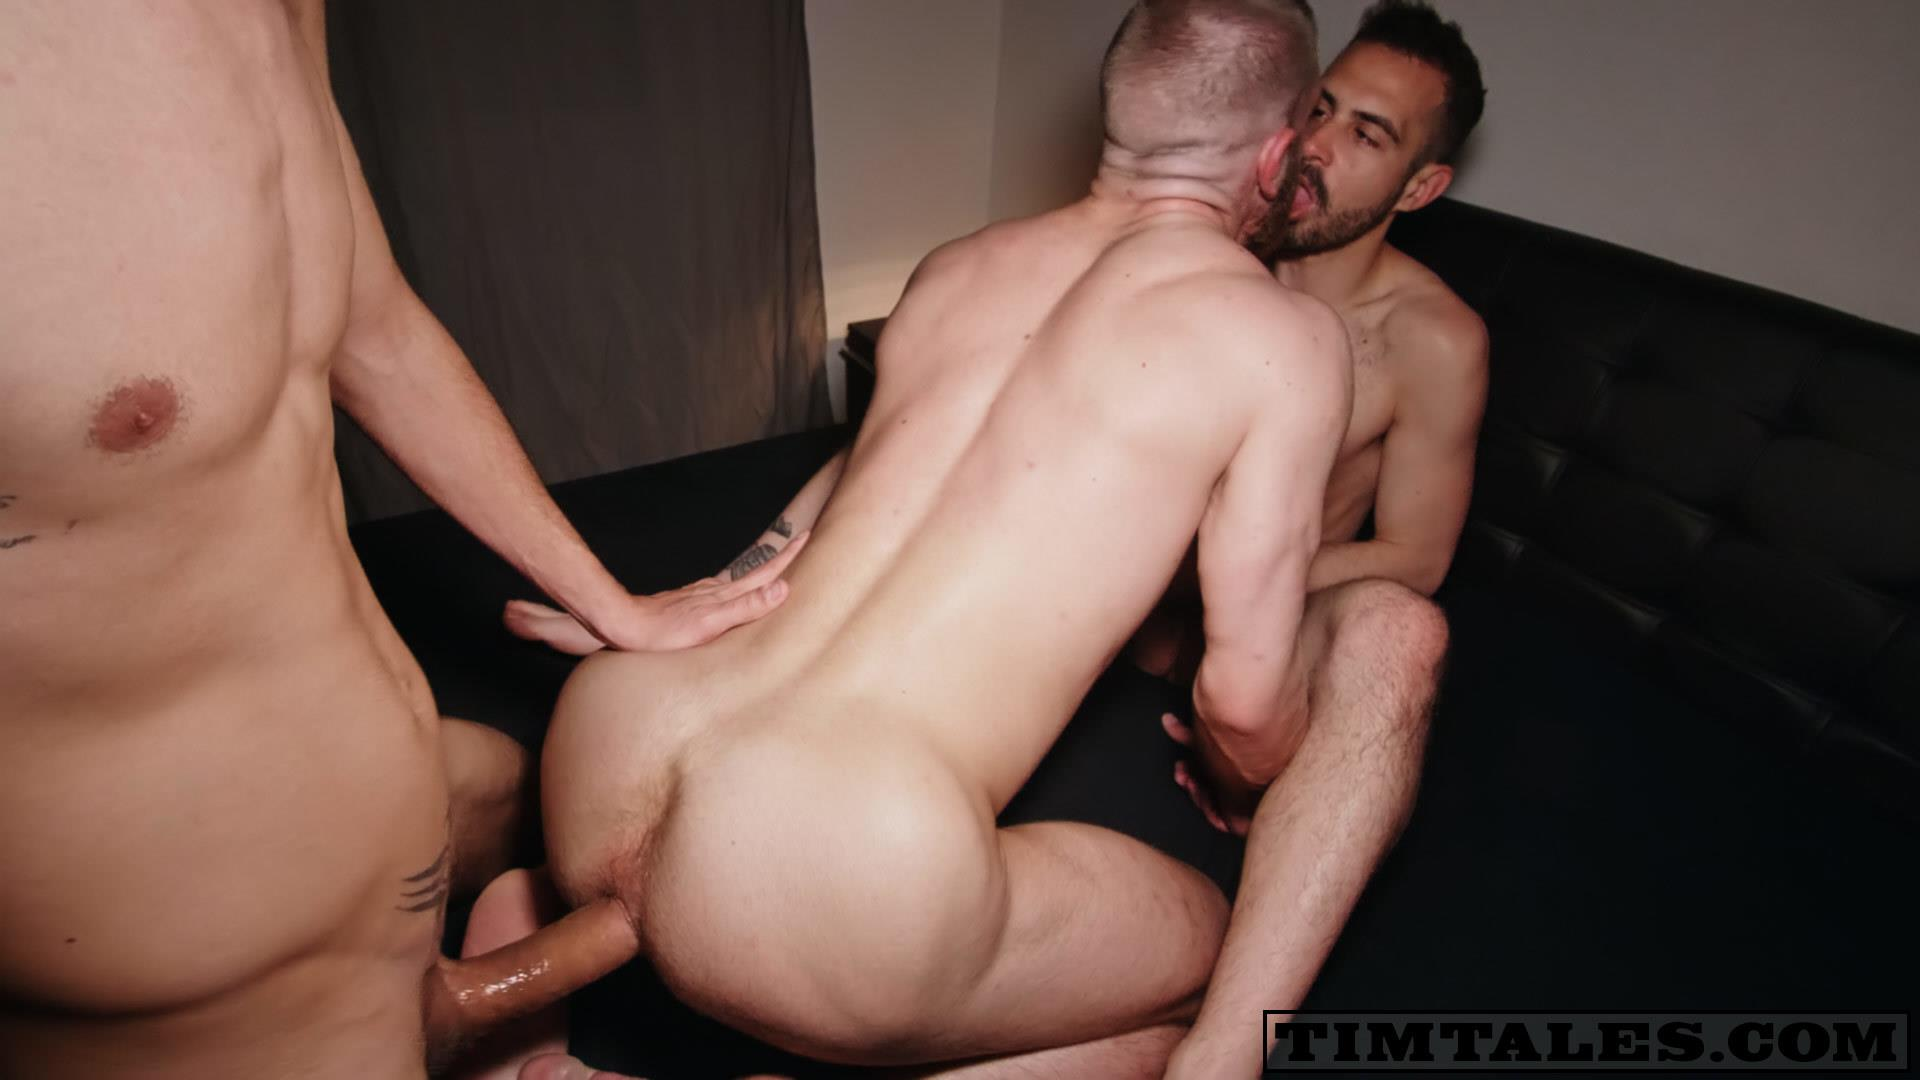 TimTales-Caleb-King-and-Koldo-and-Franklin-Acevedo-Big-Uncut-Cock-Double-Penetration-Bareback-21 TimTales:  Caleb King Takes Two Huge Uncut Bareback Cocks